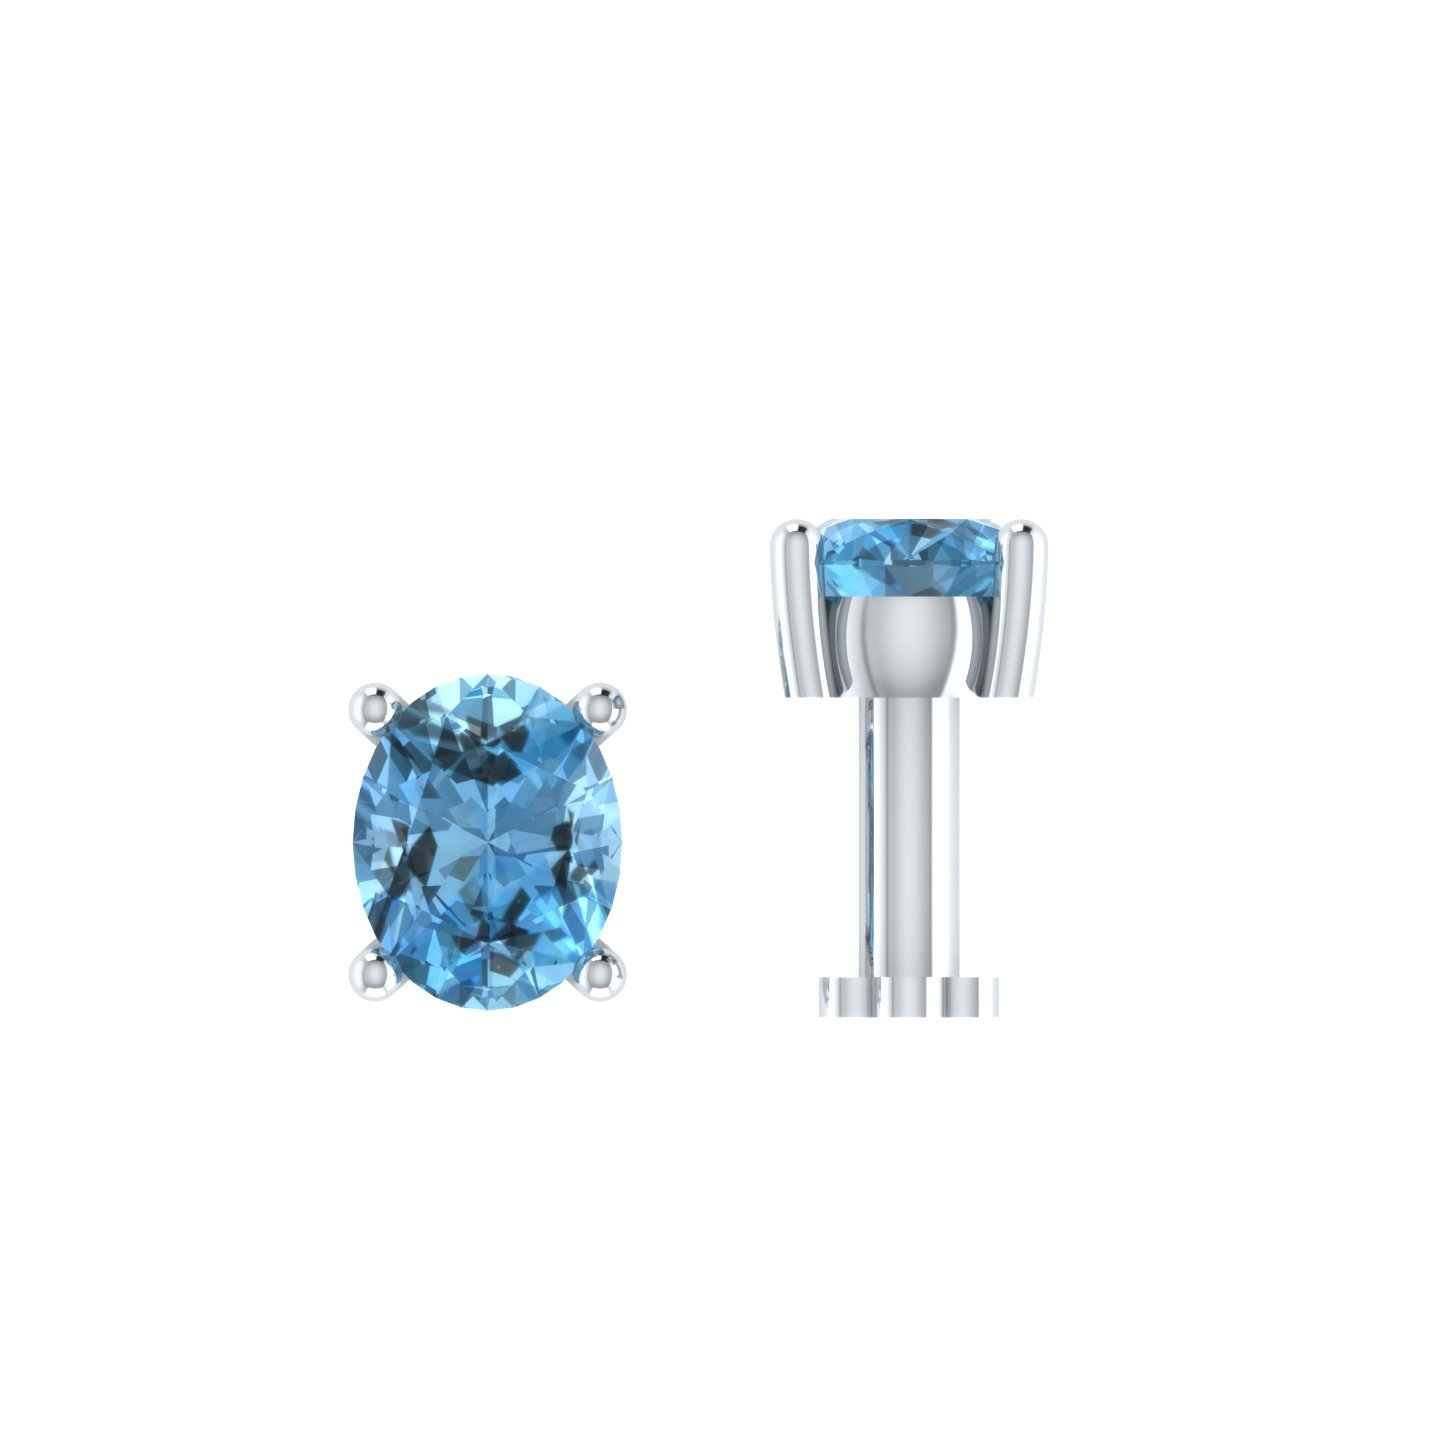 Smjewels 0.15 Ct Aquamarine Solitaire Nose Bone Sterling Silver Screw Stud Piercing Ring Pin